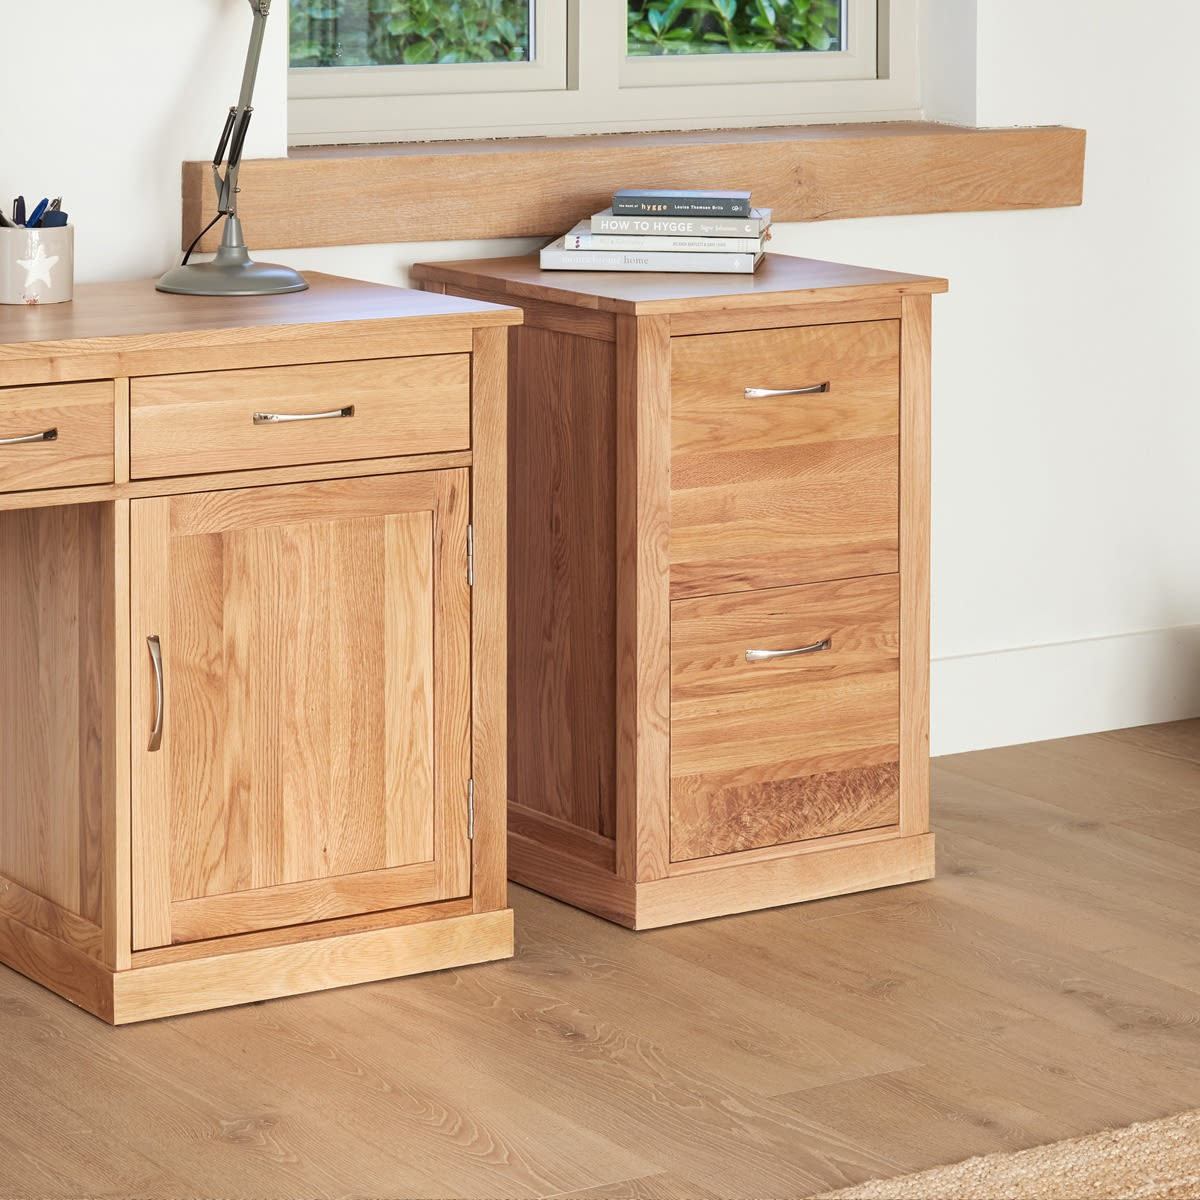 Home Office Furniture At Wooden Furniture Store: Mobel Oak Two Drawer Filing Cabinet Was £360.00 Now £296